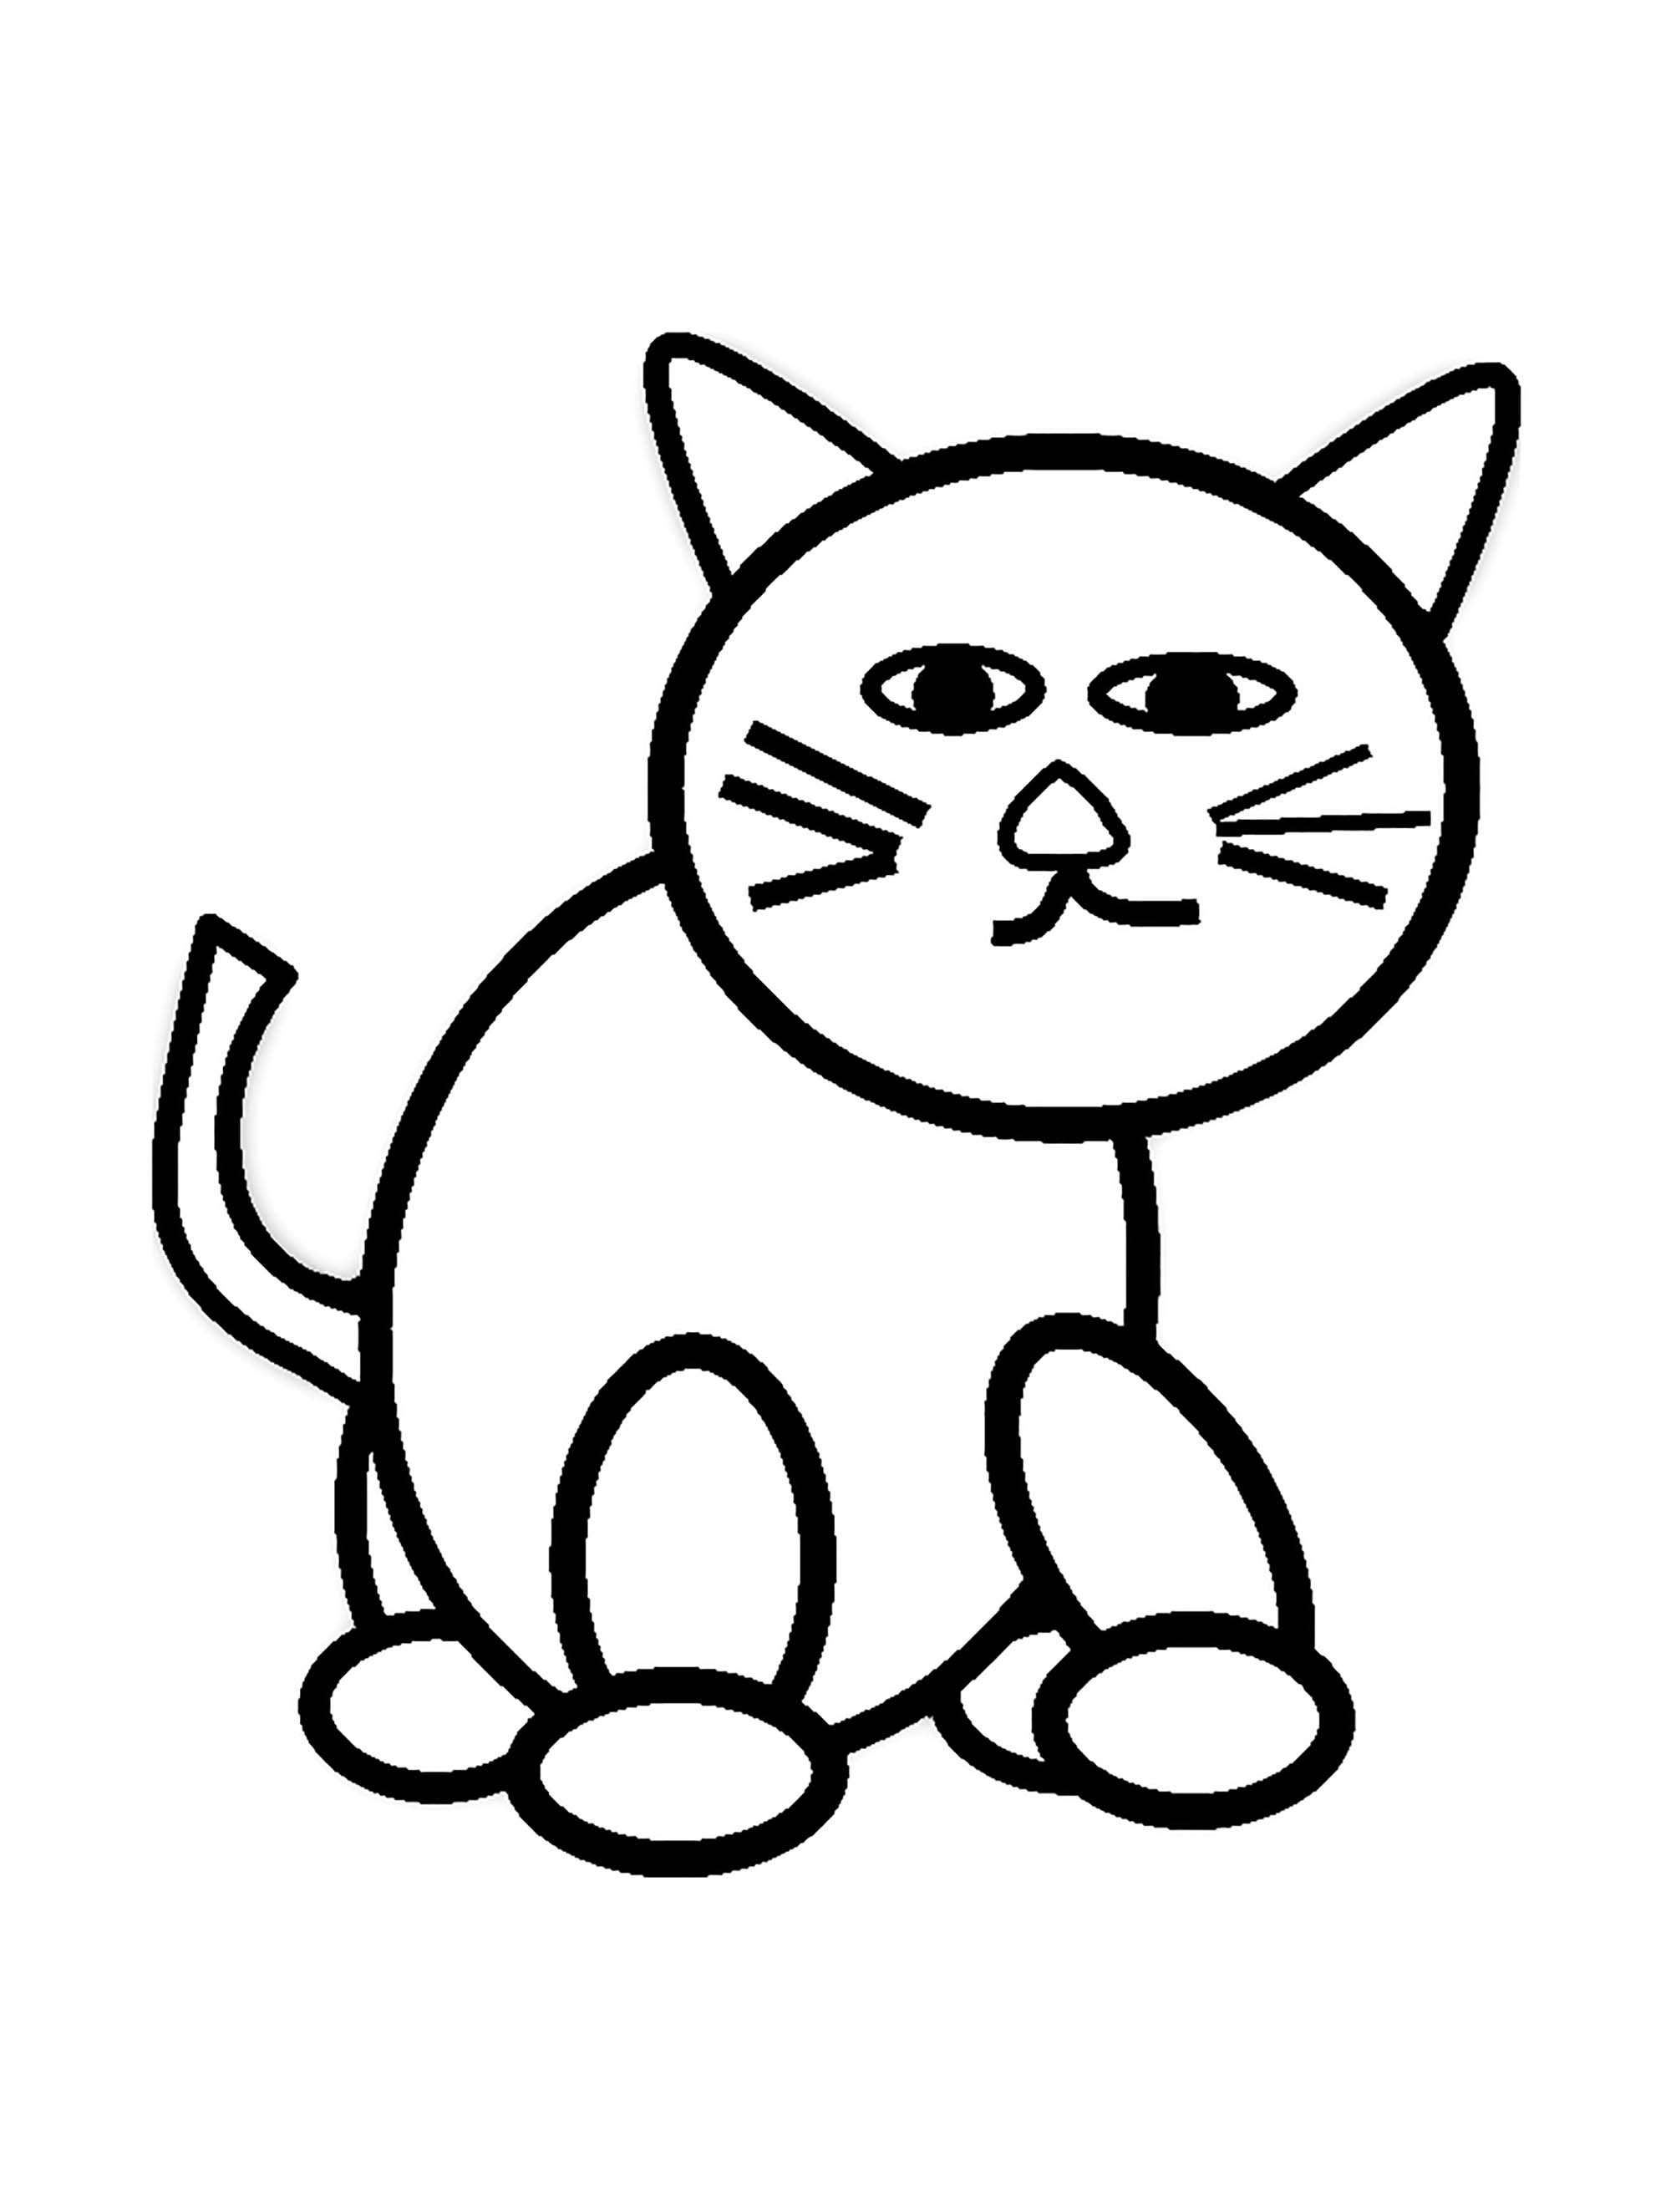 cat coloring book coloring pages for kids cat coloring pages for kids cat book coloring